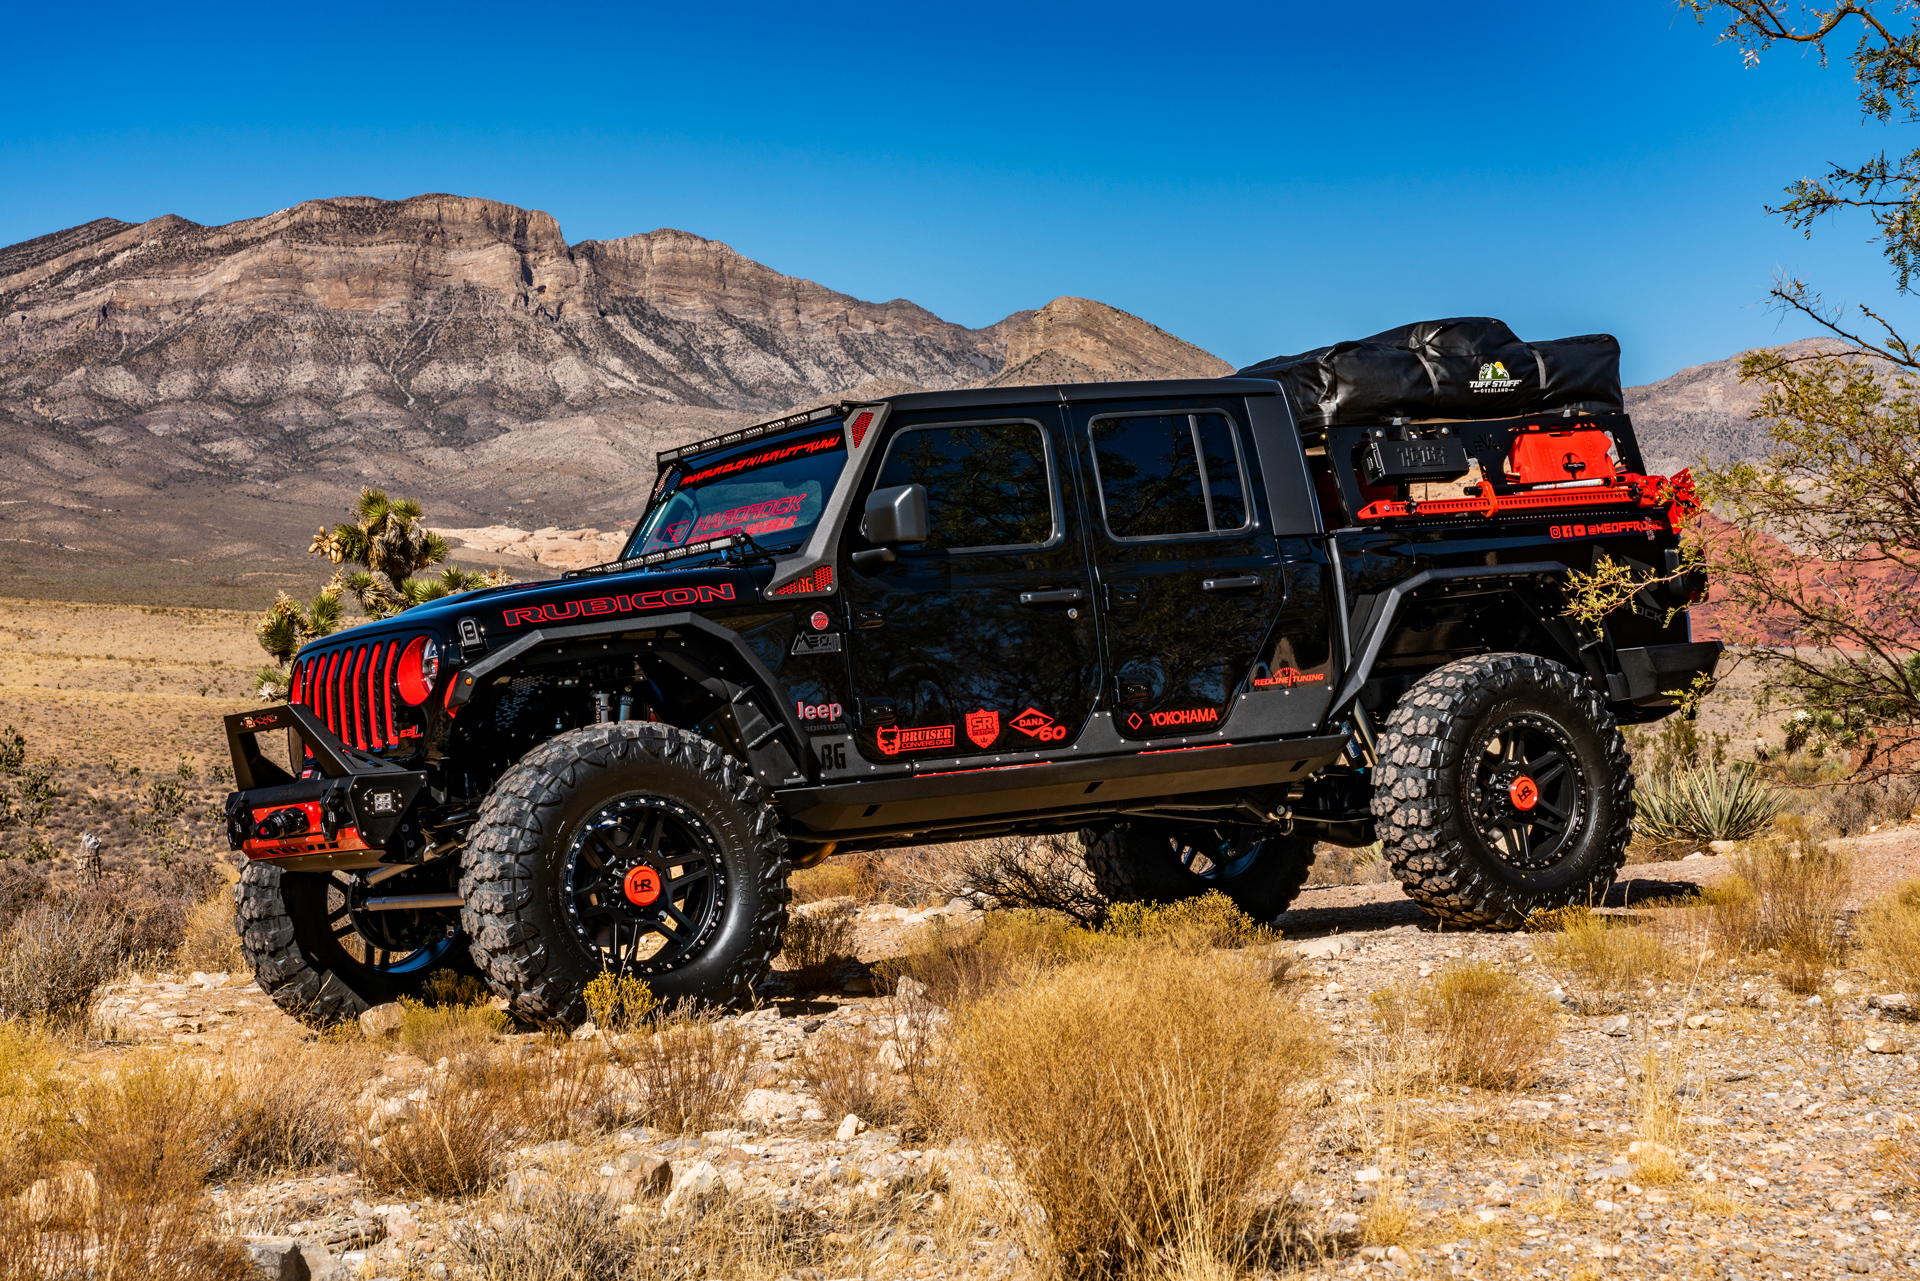 H103 20x9 Hardrock Offroad Wheels 2020 SEMA LS3 Swapped Jeep Gladiator Rubicon